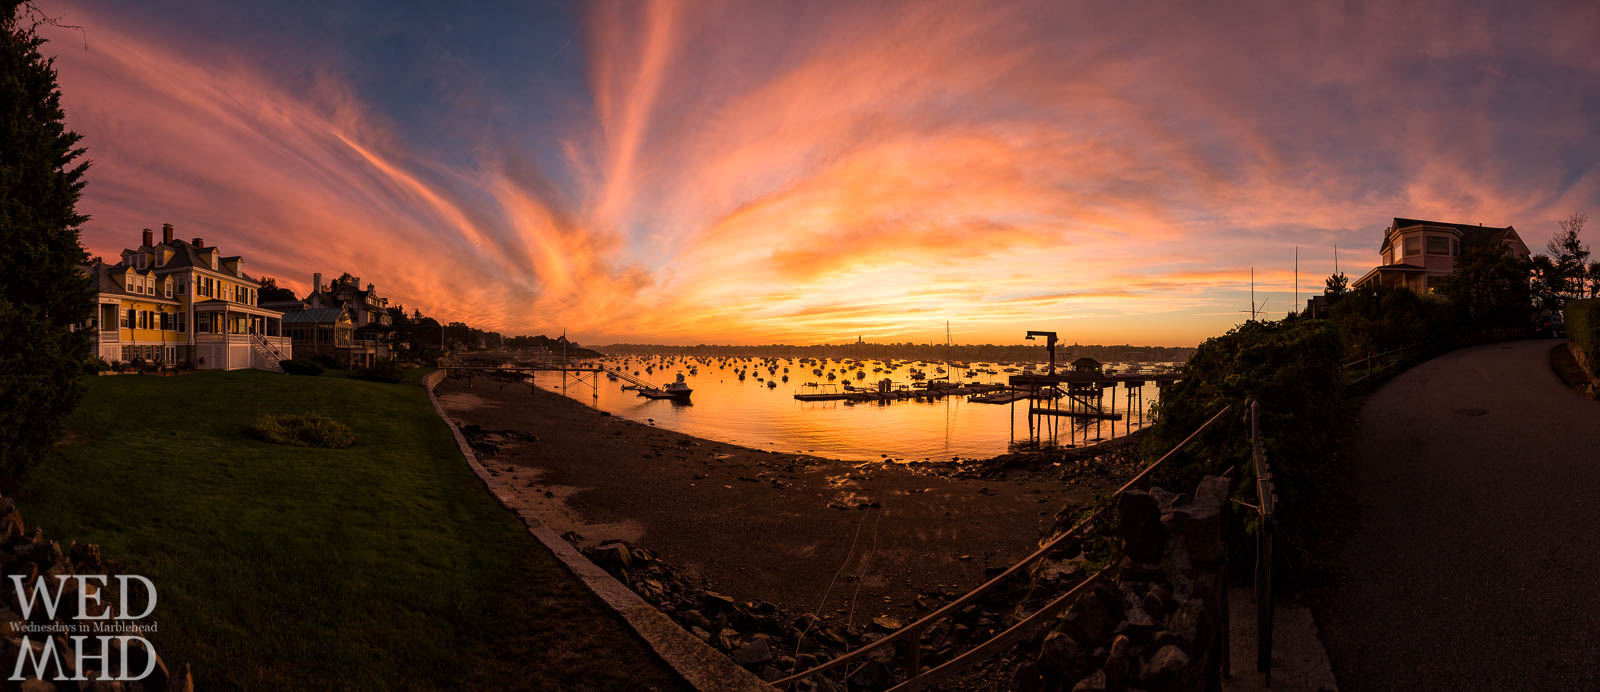 A September sunset creates a breathtaking view from Corinthian Lane as captured in this panorama of stately houses, a harbor filled with boats and reflecting golden light